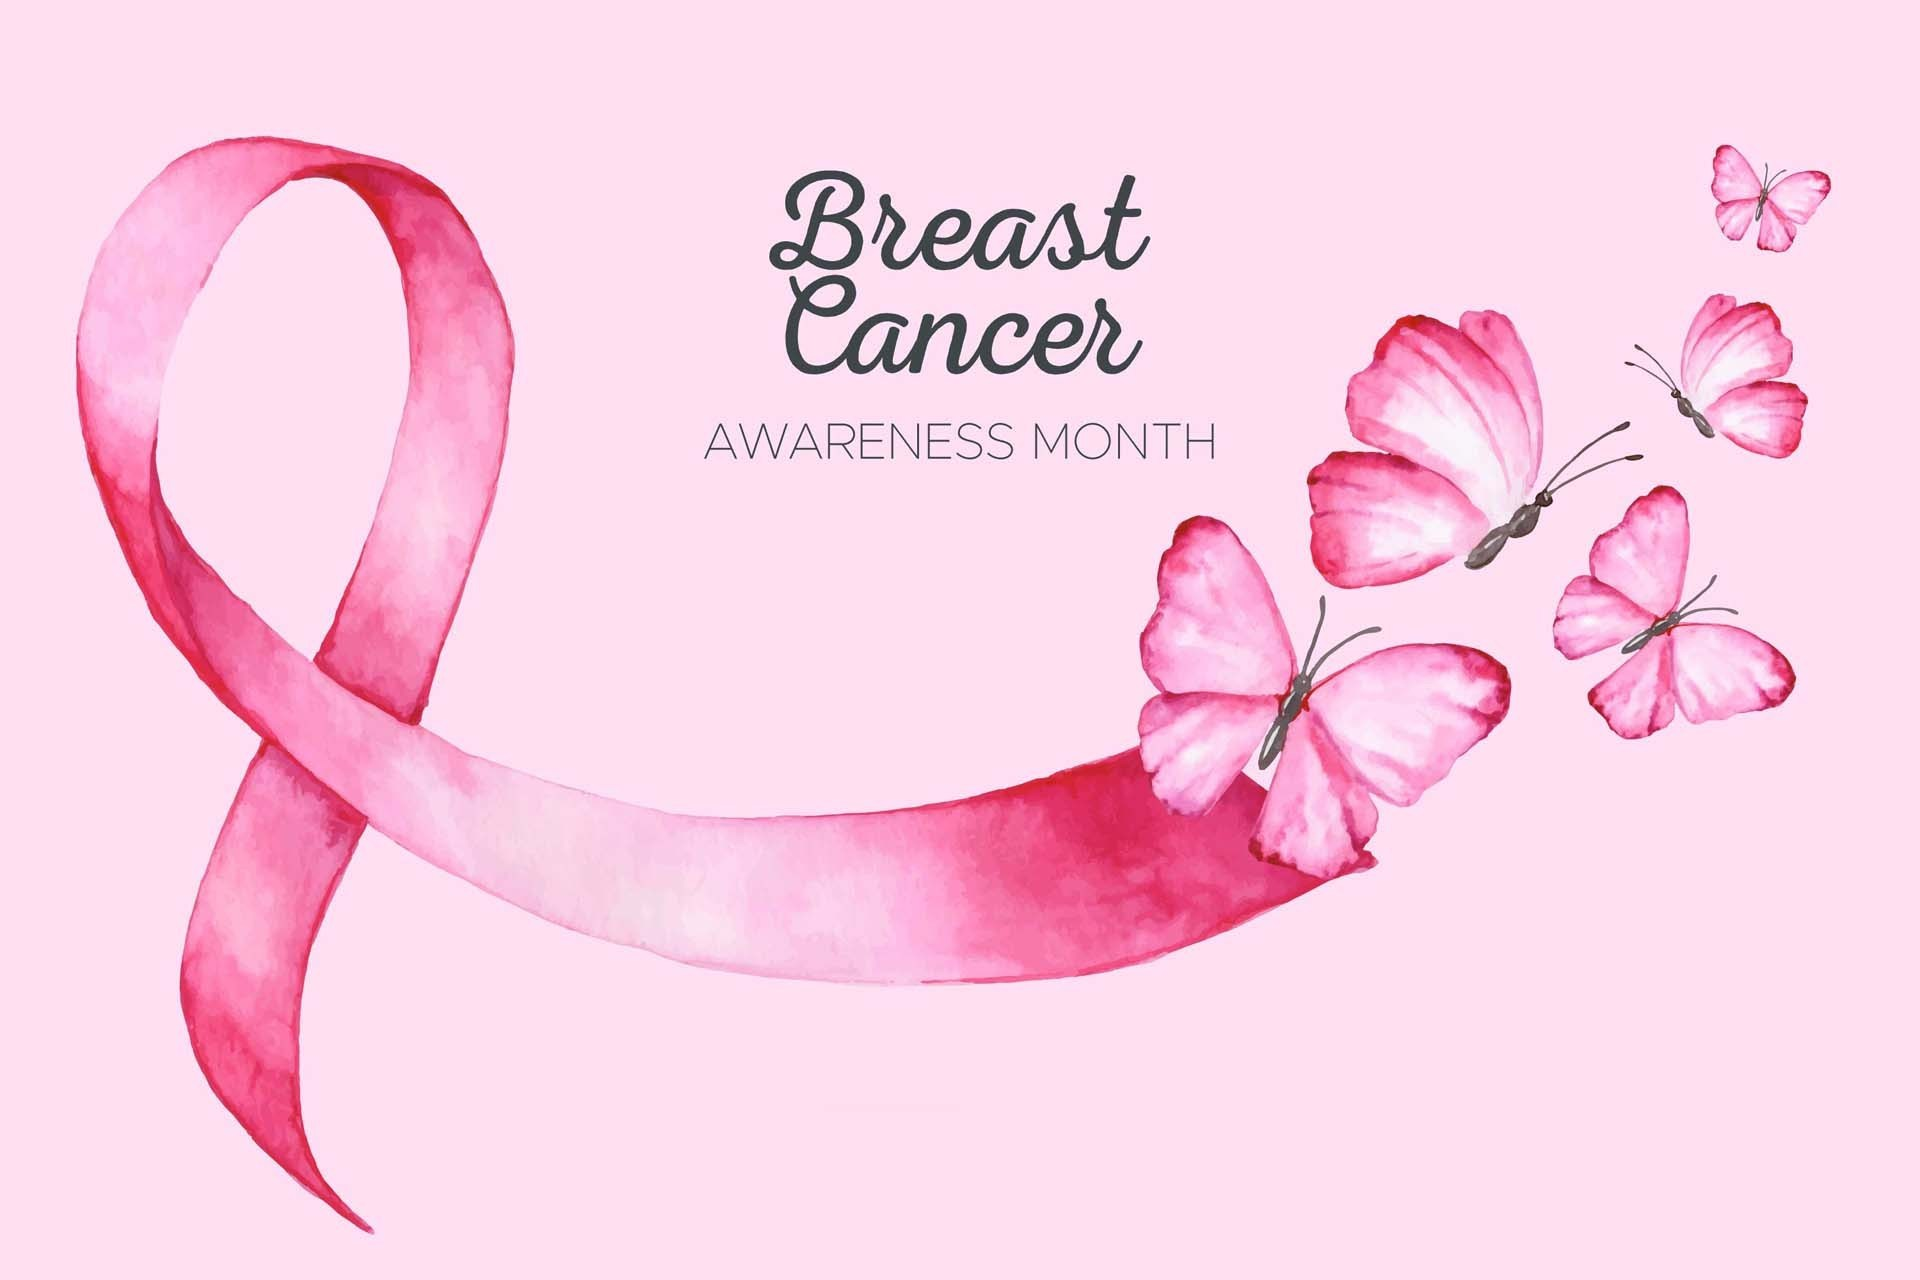 Ways To Participate In 'Breast Cancer Awareness Month'